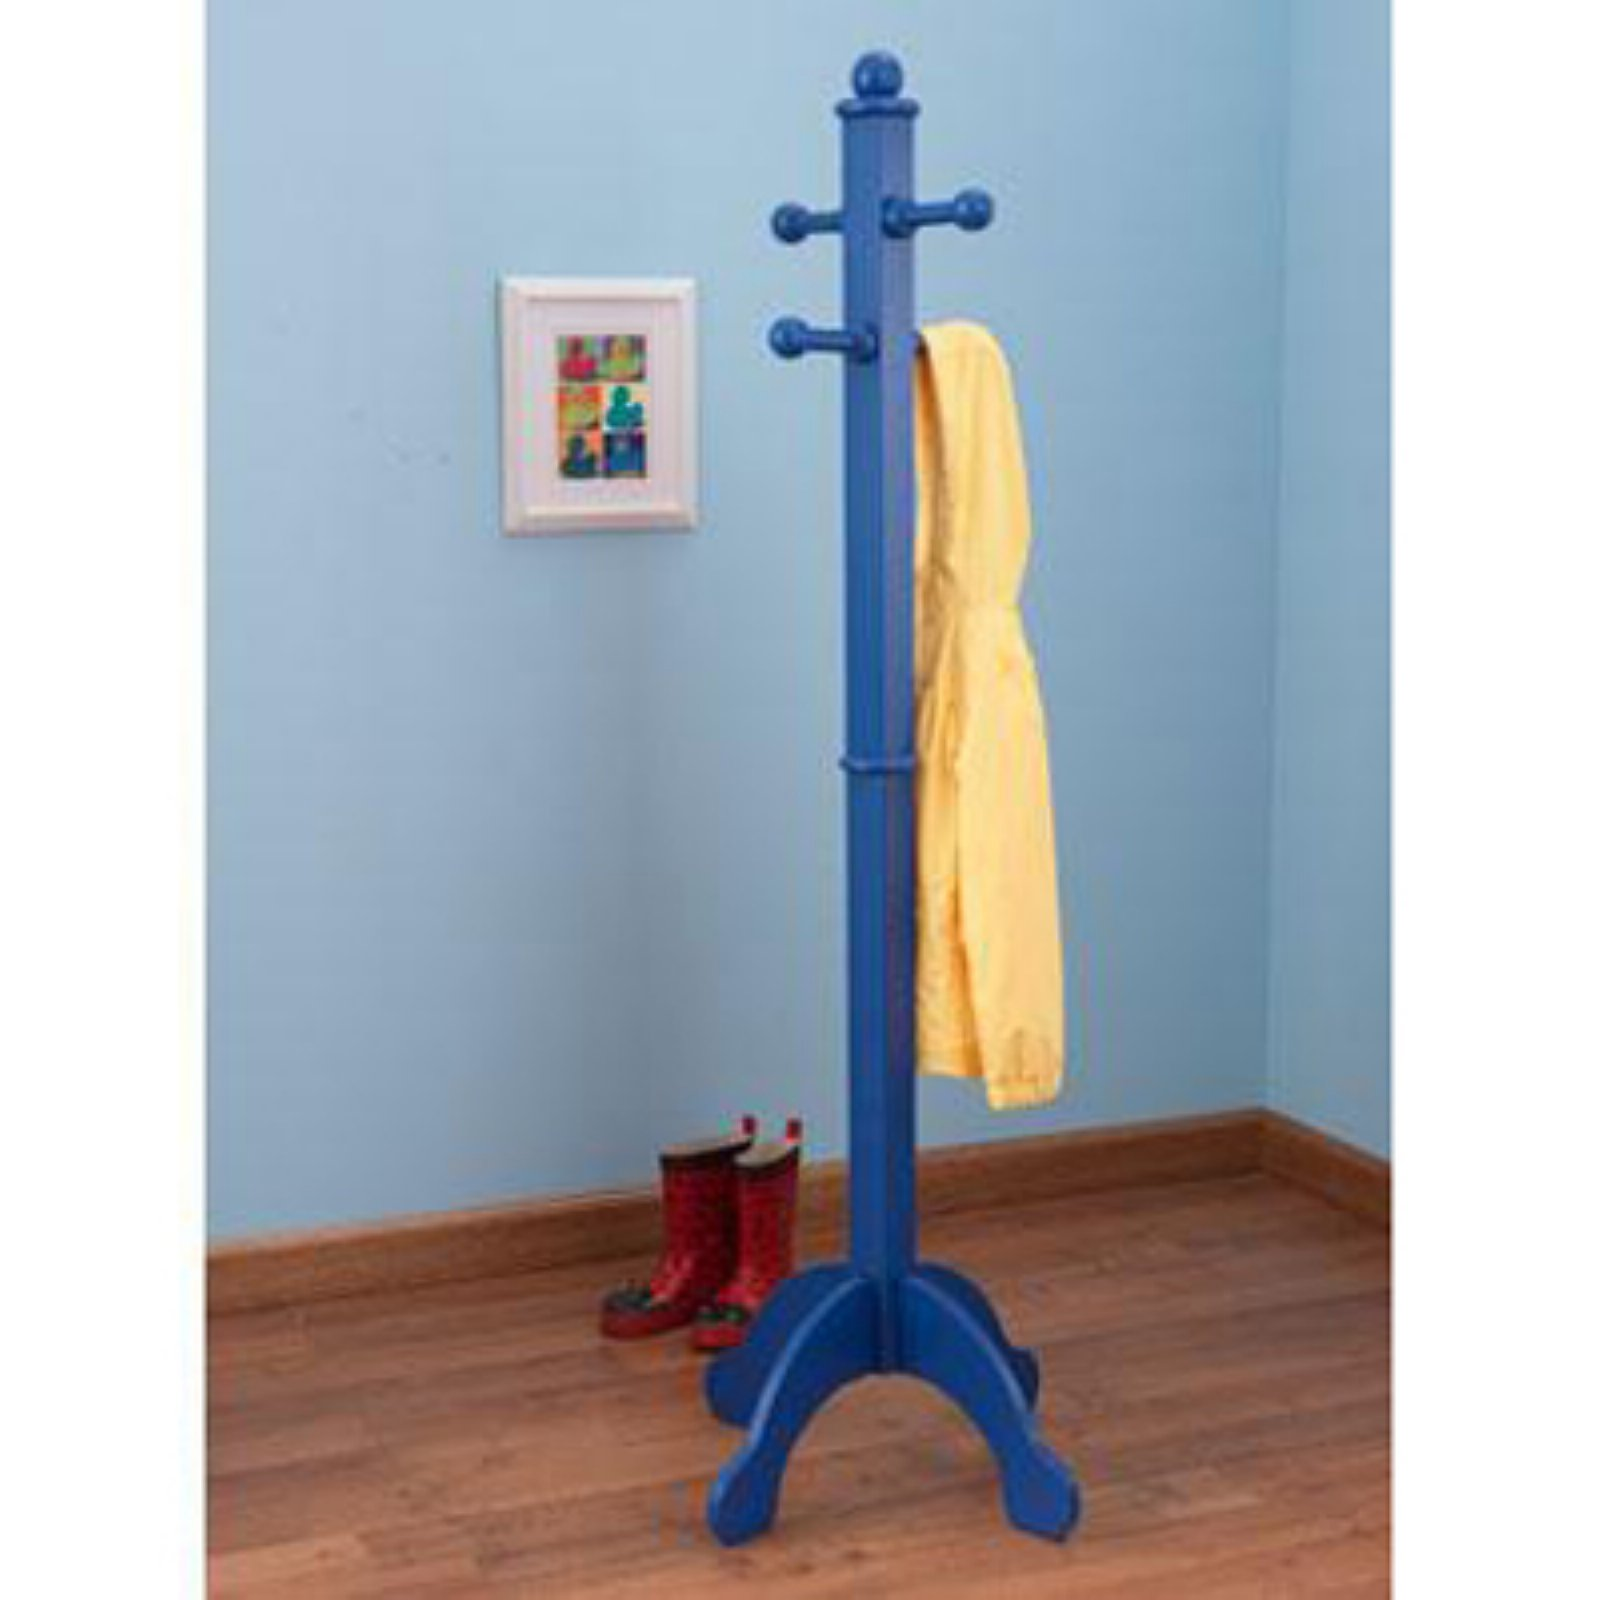 KidKraft Deluxe Clothespole with Pegs - Blue - 19261